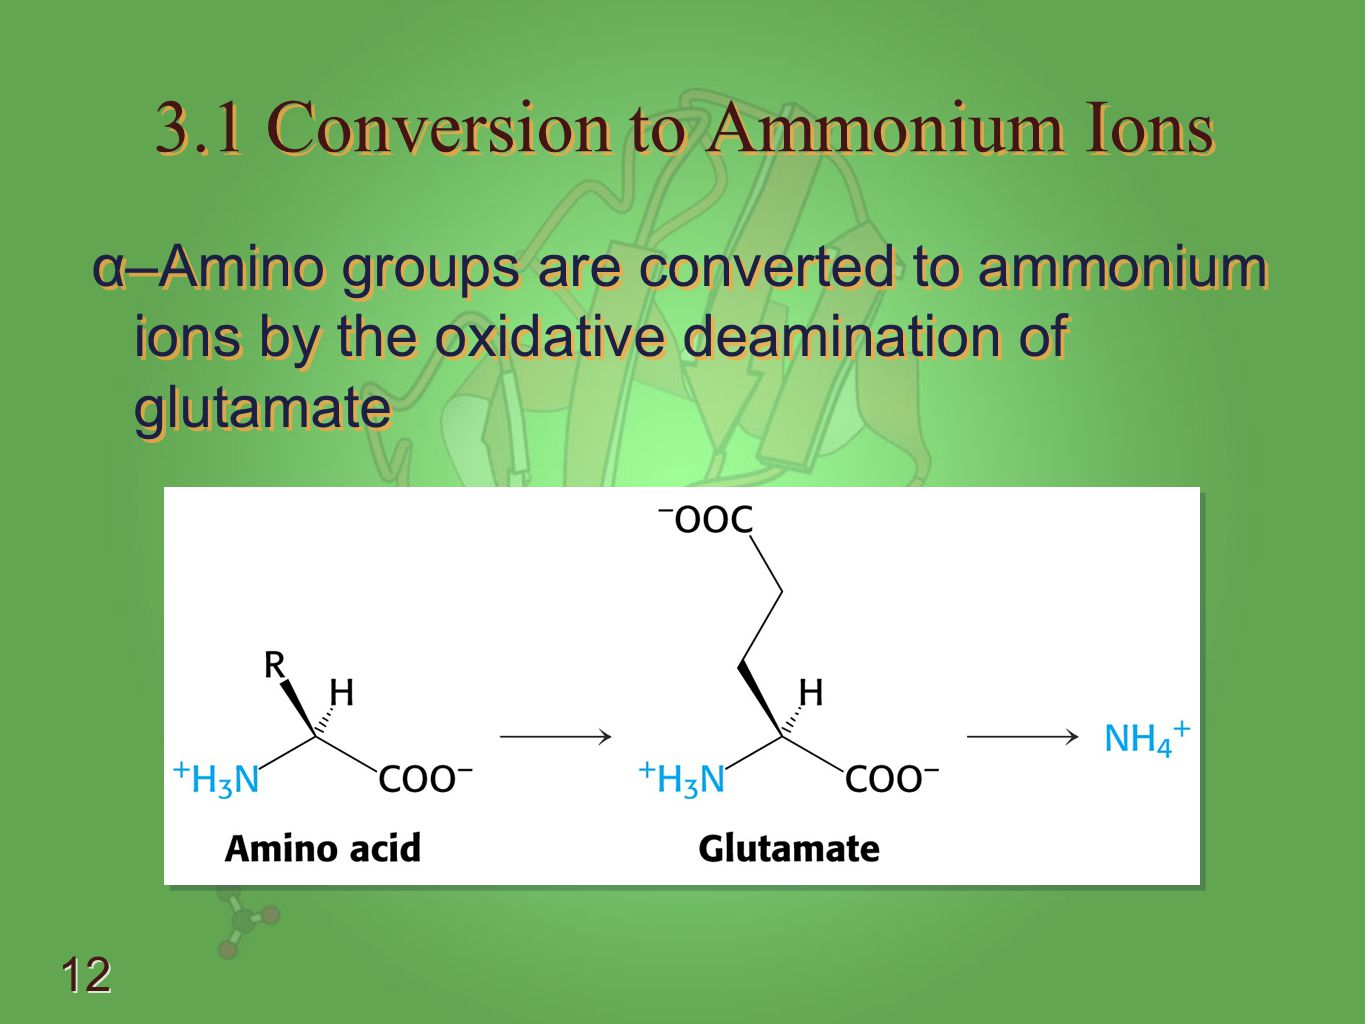 3.1 Conversion to Ammonium Ions